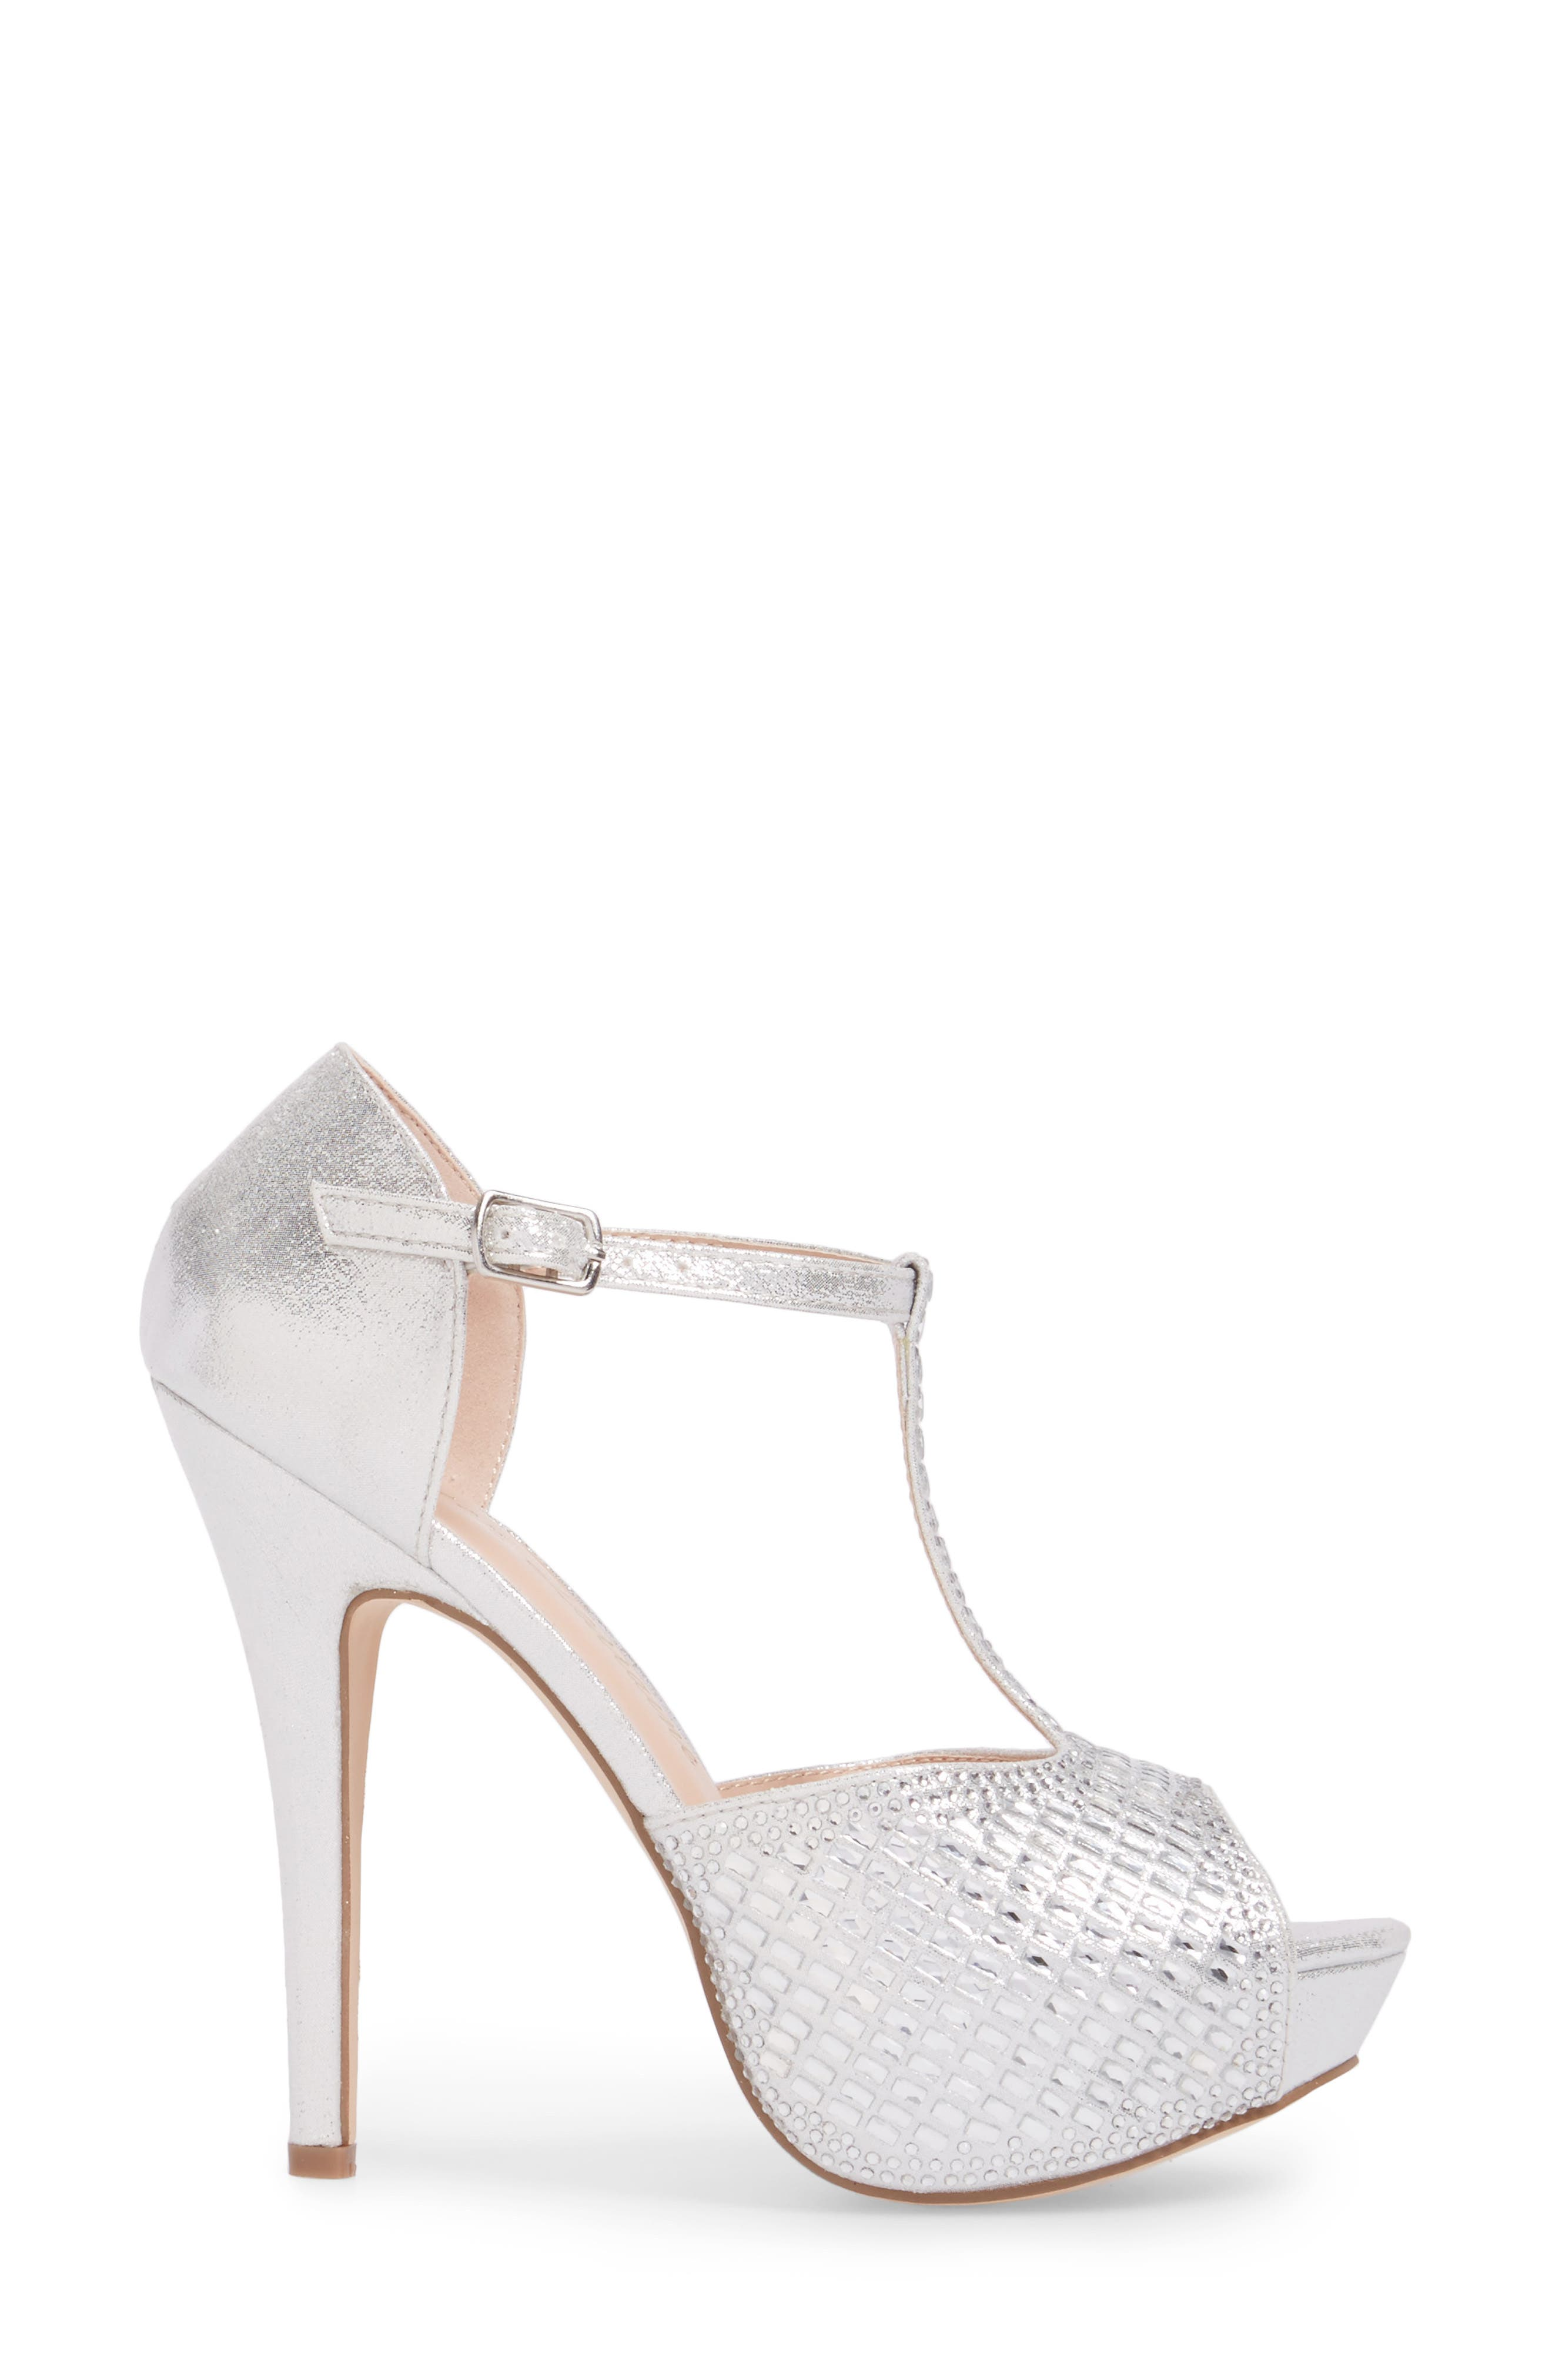 Vivian 4 Crystal Embellished Sandal,                             Alternate thumbnail 8, color,